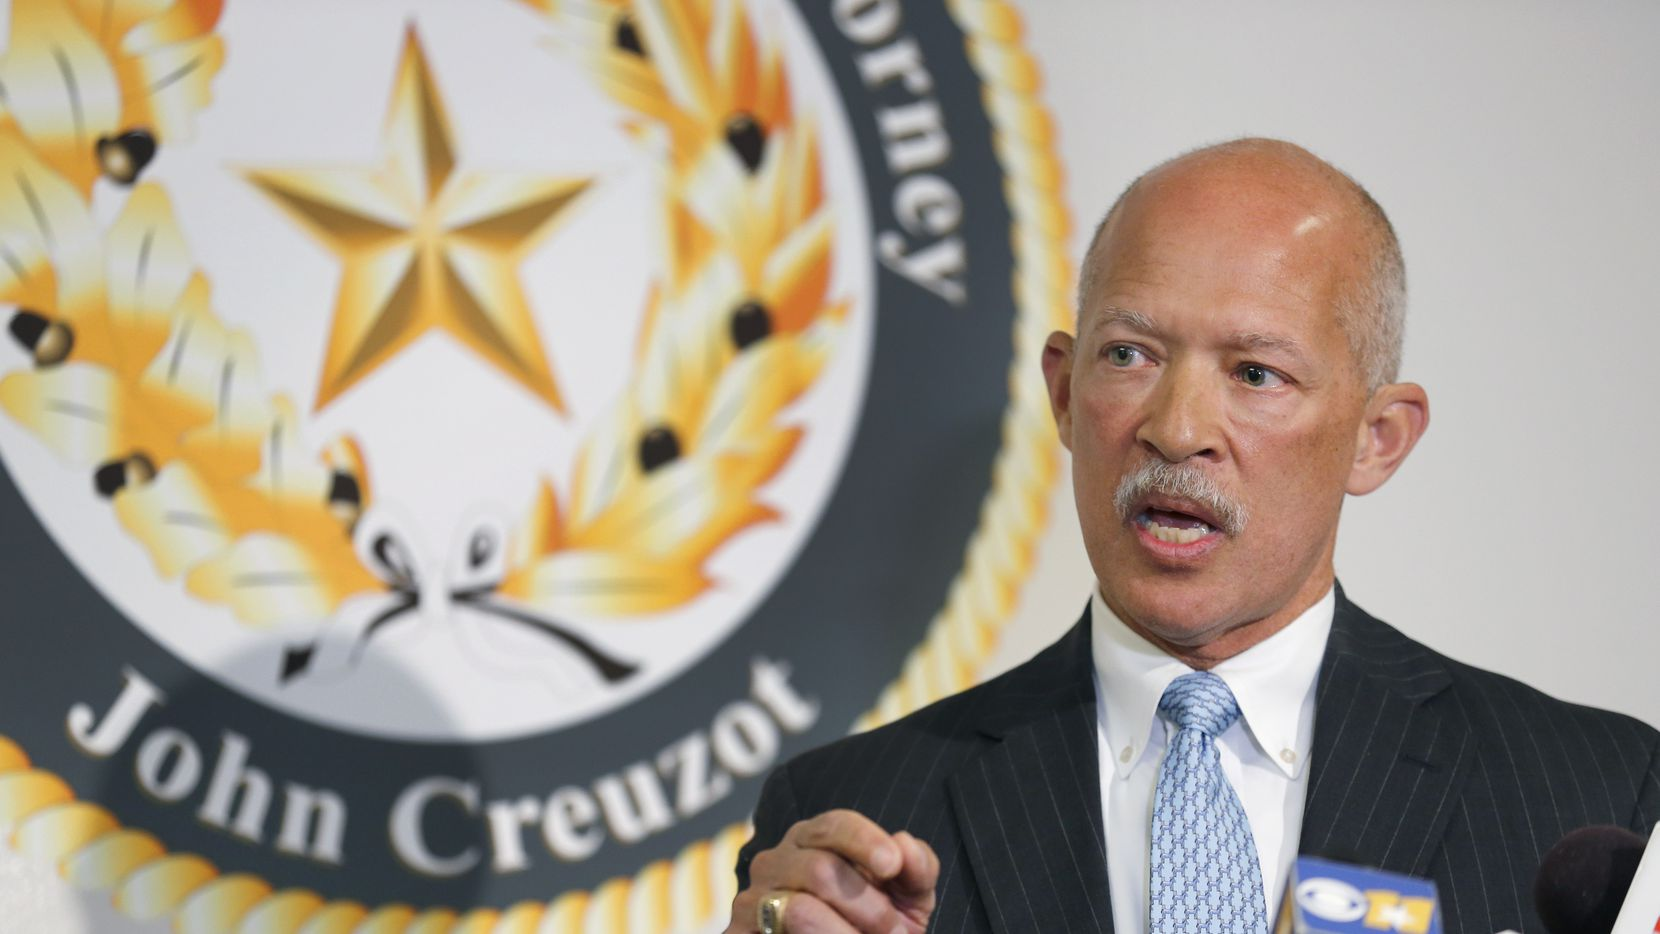 Dallas County District Attorney John Creuzot speaks about the dismissal of Judge Tammy Kemp's gag order in the Amber Guyger trial during a press conference at the Frank Crowley Courts Building in Dallas, Wednesday, January 8, 2020. Creuzot is going to eliminate gag orders for cases tried at the Courthouse. (Tom Fox/The Dallas Morning News)